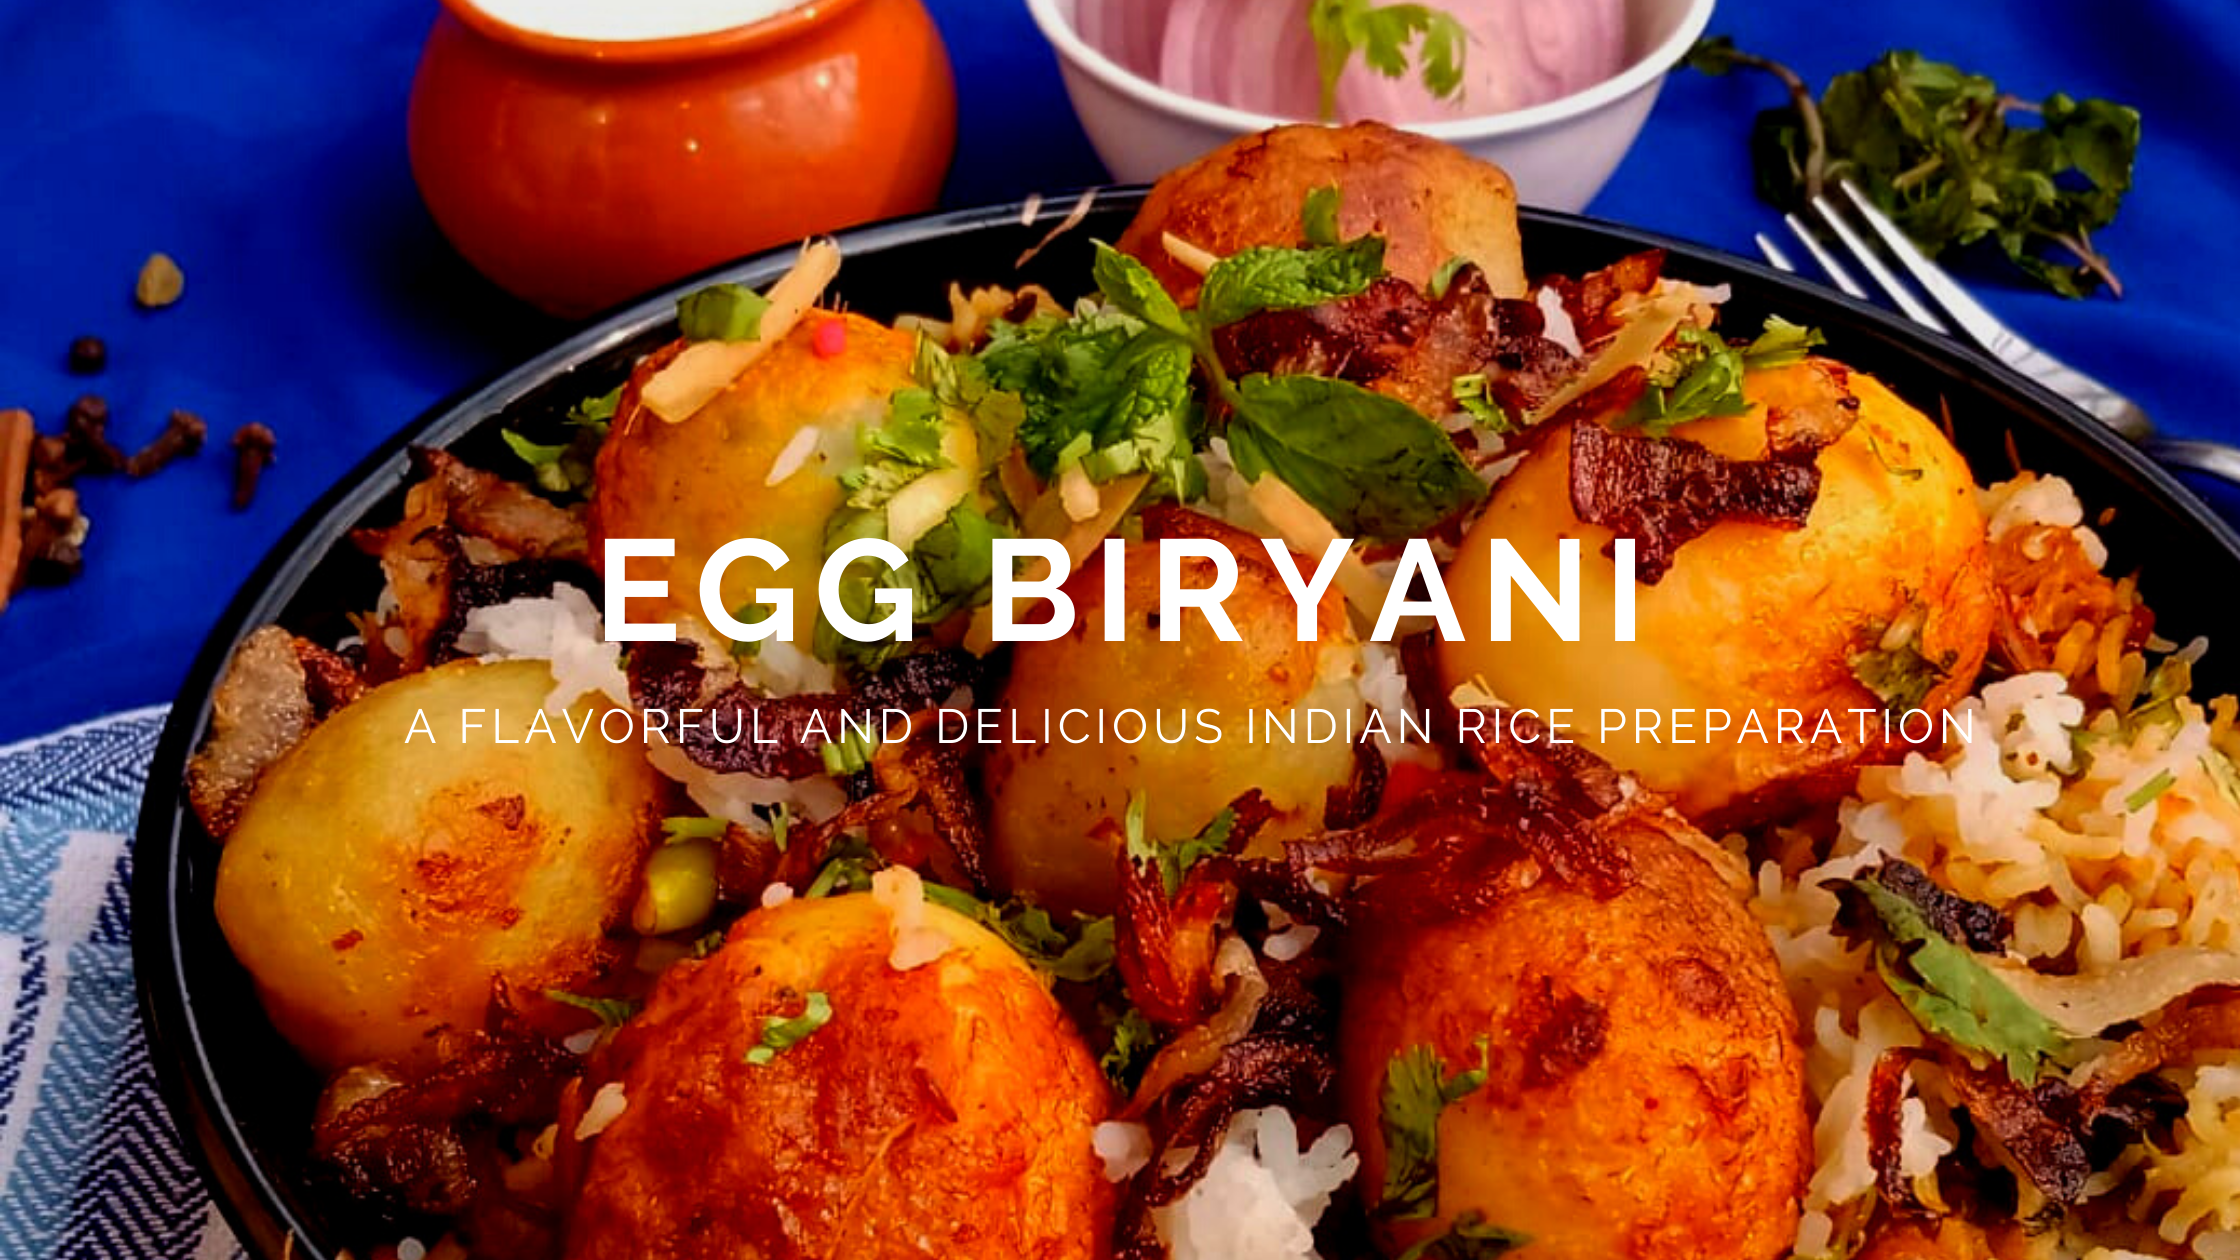 Egg Biryani by Chef Ankit gaurav